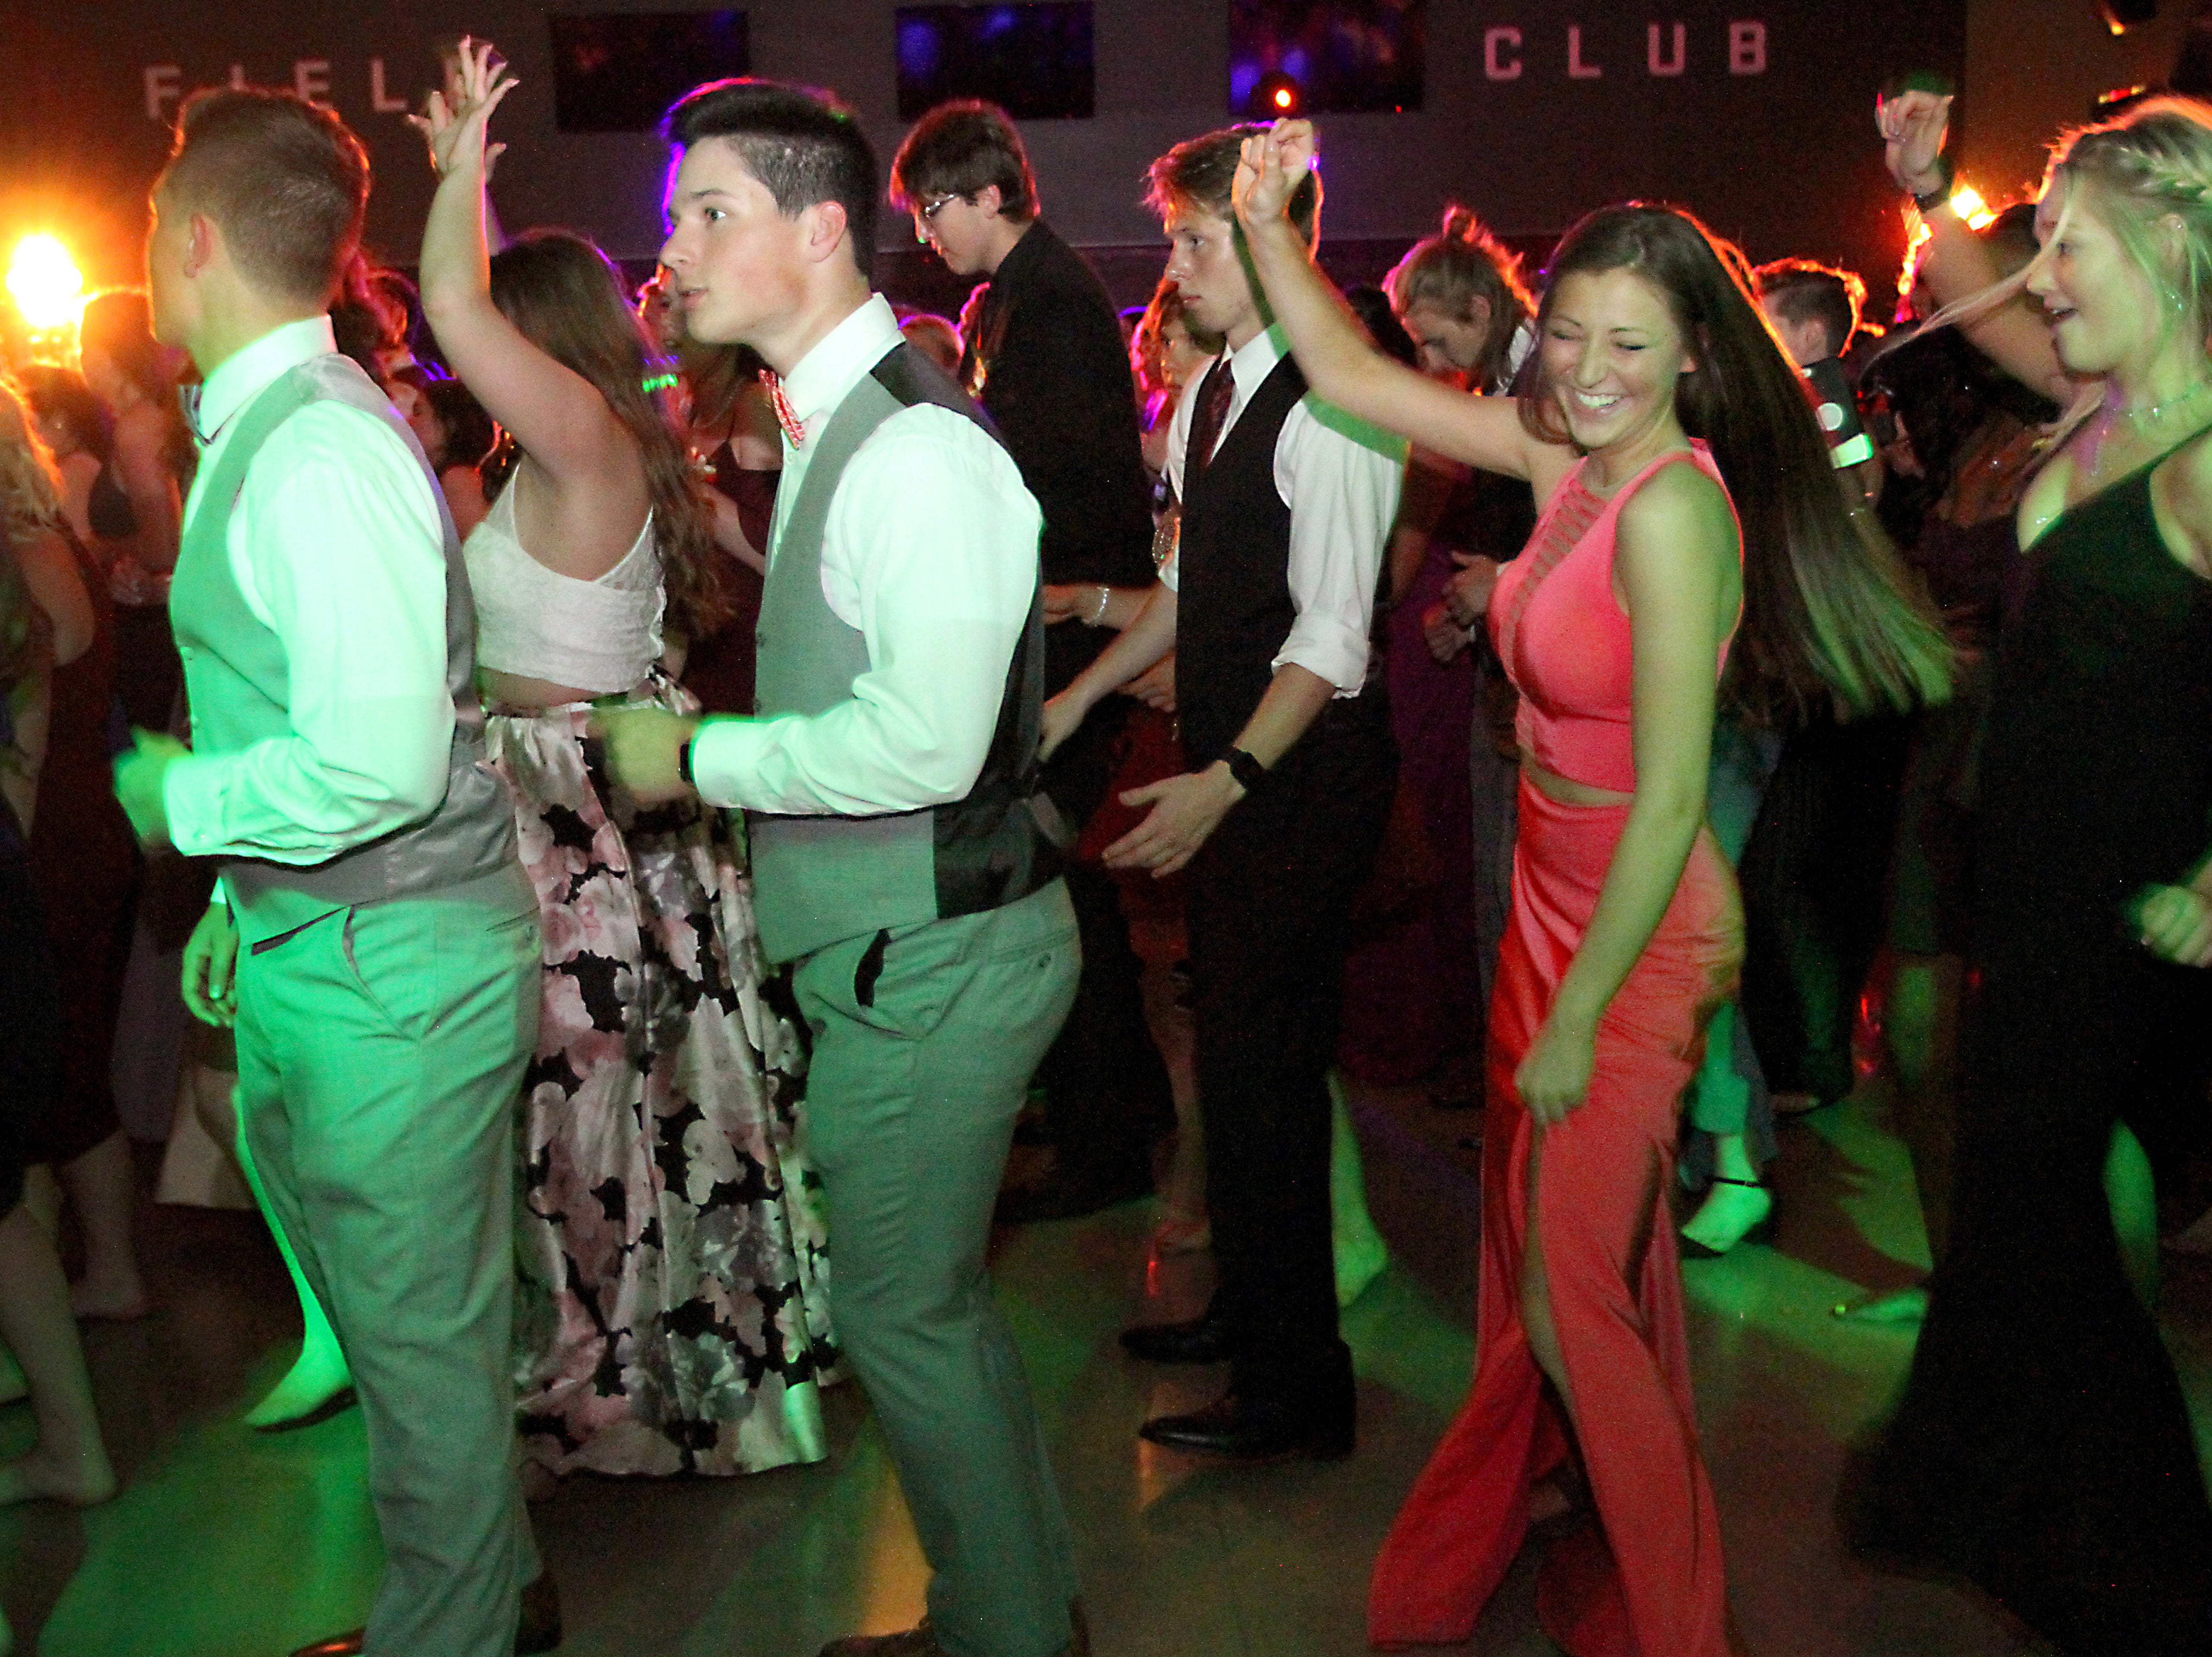 Joel Blocker / For the Coloradoan Fort Collins high School, from left, Diego Aragon, Aaron Van Metre, Zoe Struble and Amelia Welch, dance the night away during the Fort Collins High School prom held at Canvas stadium Saturday night.